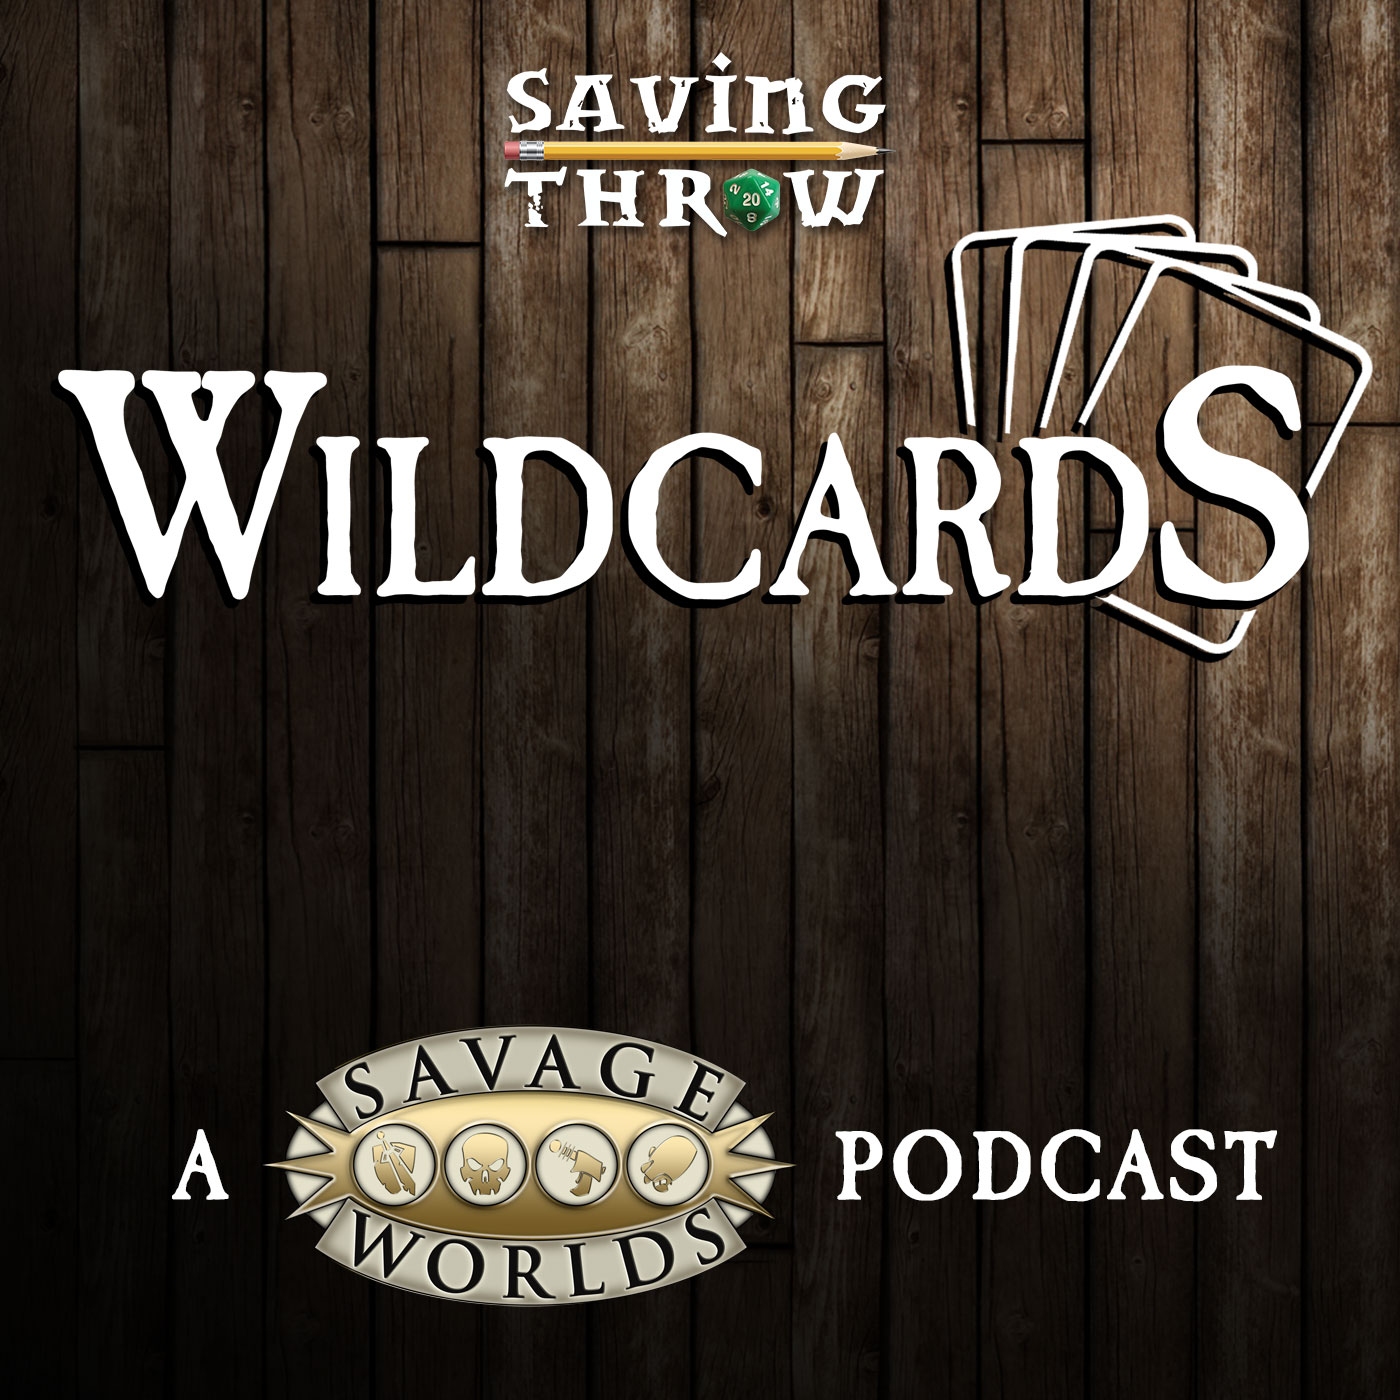 Wildcards - Saving Throw podcast show image